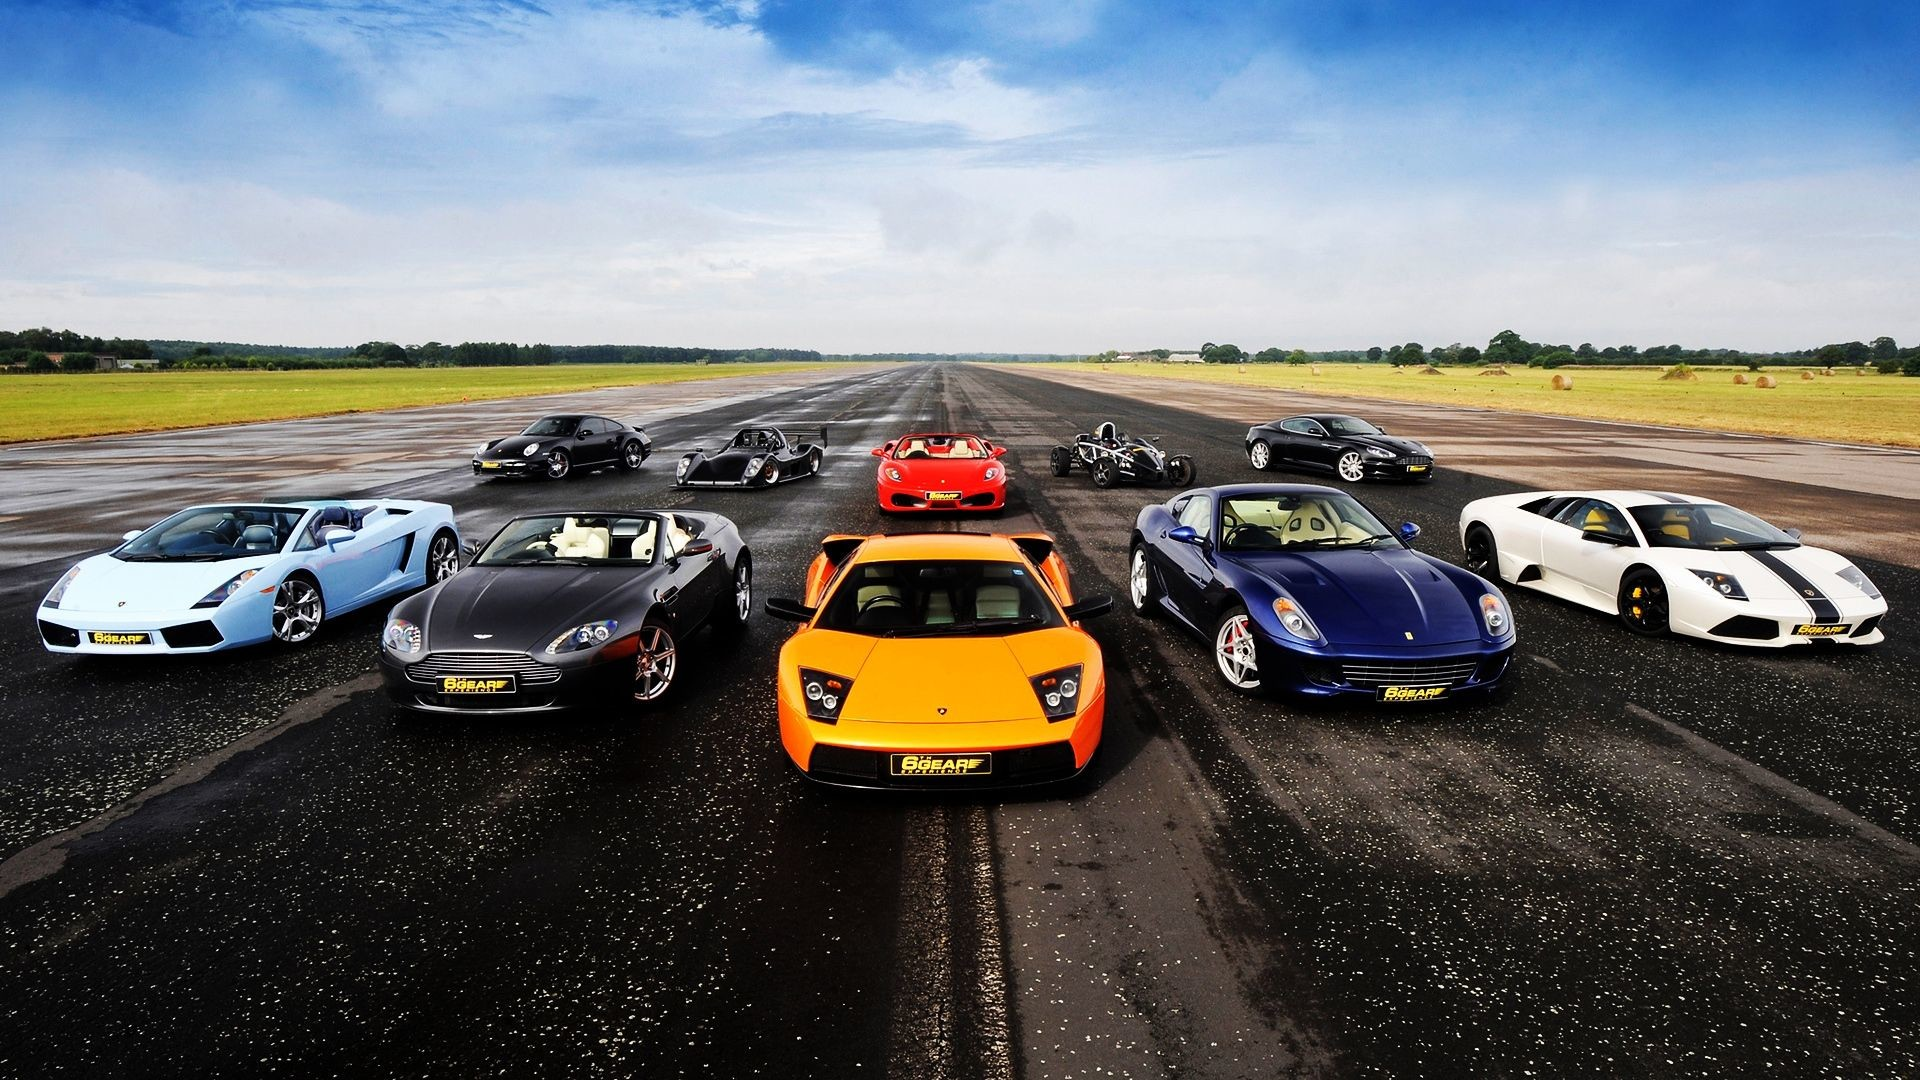 1920x1200 Super Cars Hd Images 6 HD Wallpapers | Hdimgz.com